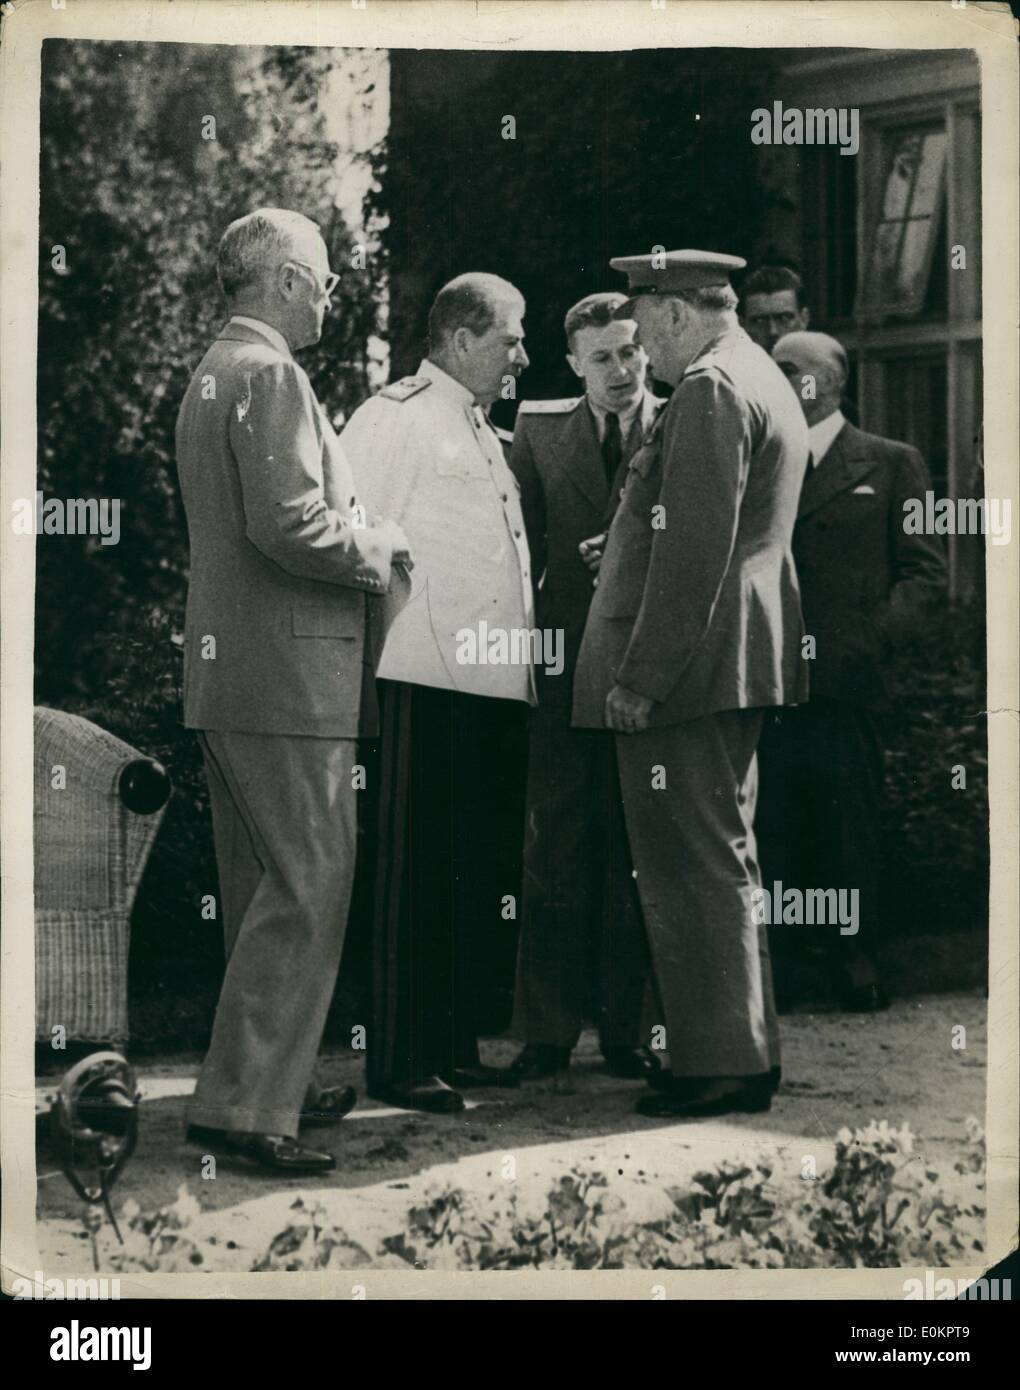 Jul 17, 1945 - Postdam, Germany - US President HARRY S. TRUMAN (L) with Russian Marshal JOSEPH STALIN (C), and British - Stock Image